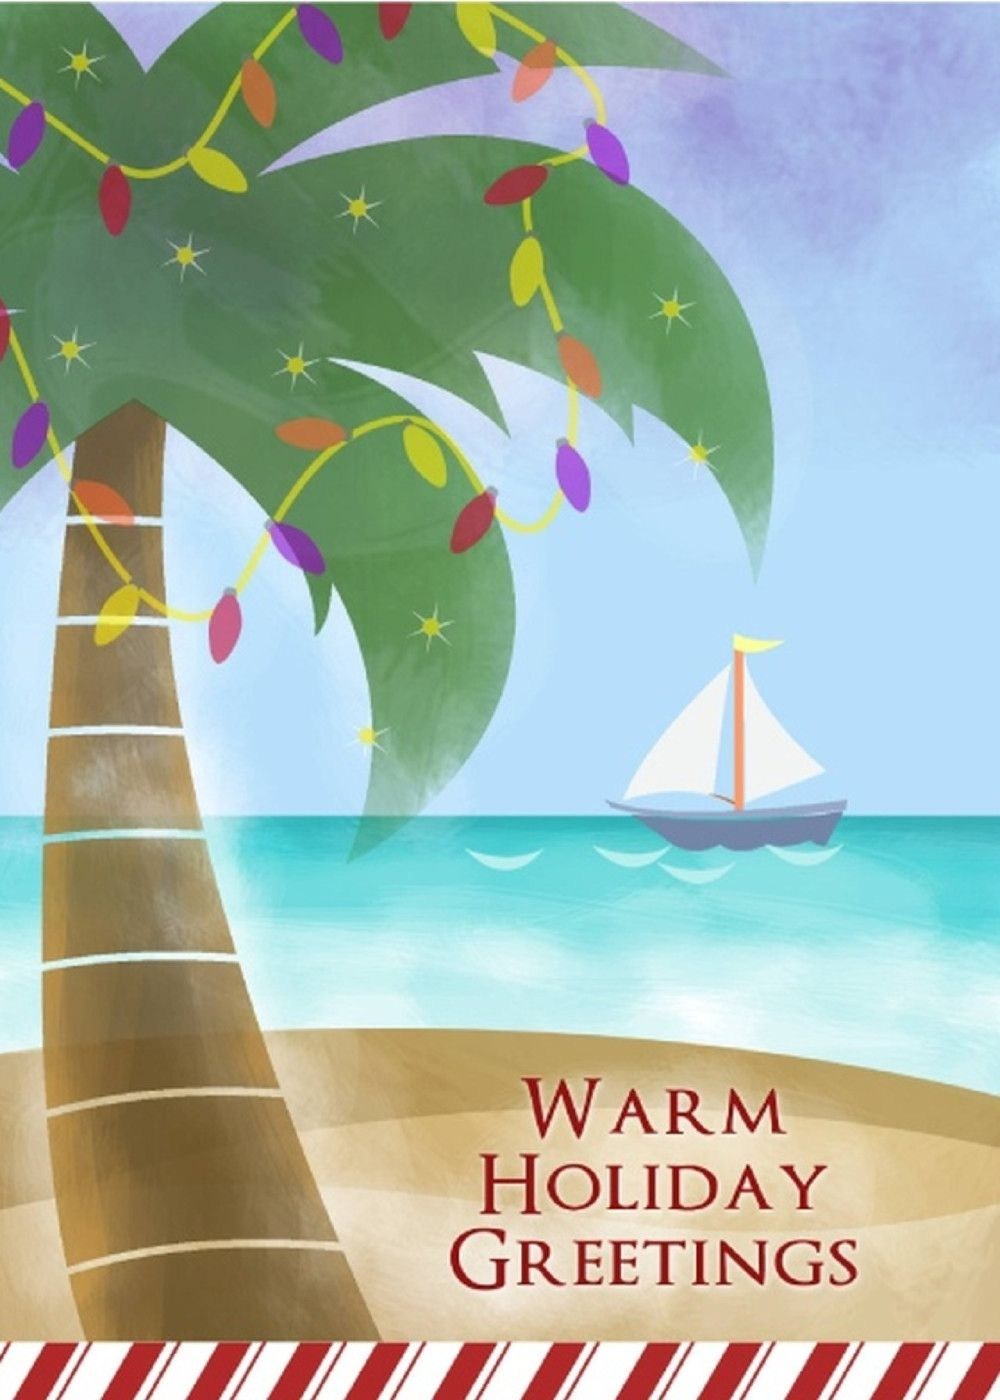 Warm holiday greetings share this card with your family and warm holiday greetings share this card with your family and friends and send warm wishes kristyandbryce Gallery